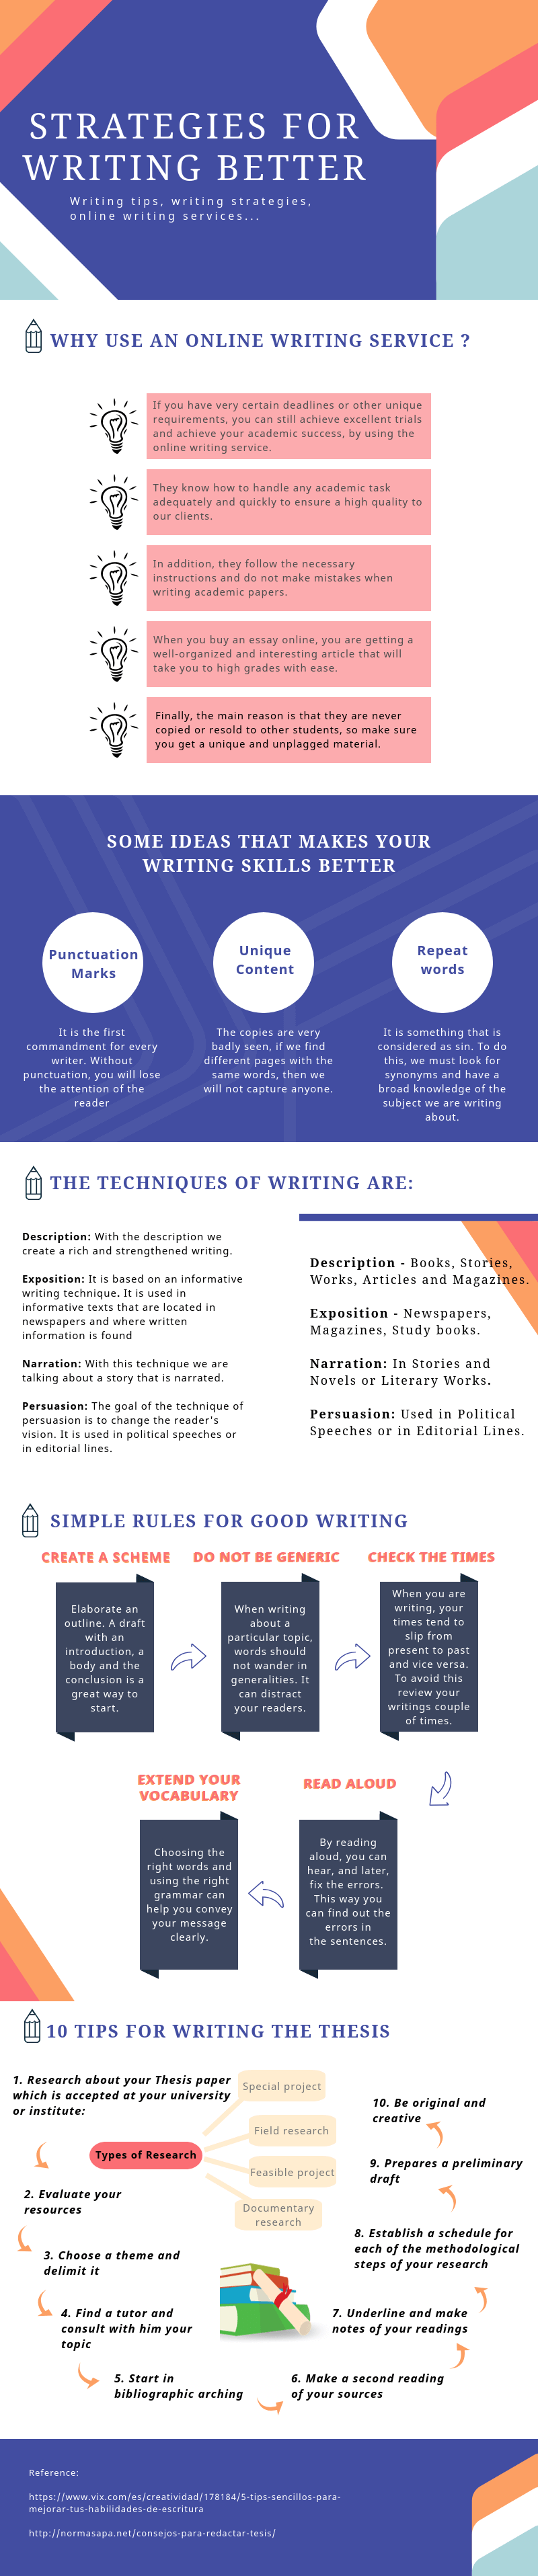 Myths about writing a thesis